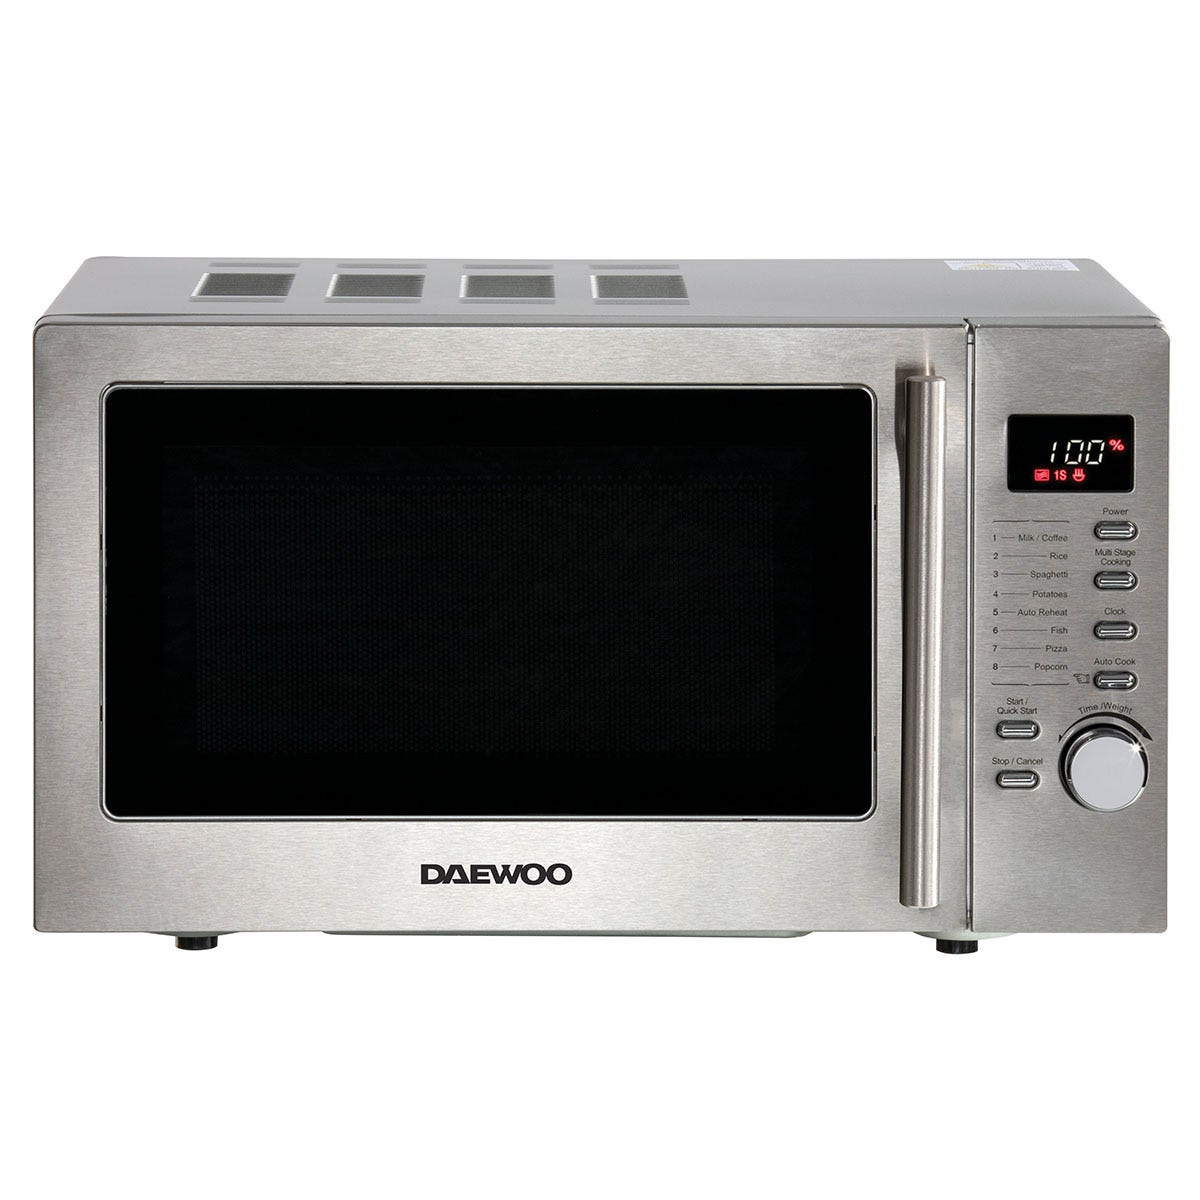 Daewoo SDA2088GE 20L 800W Manual Microwave with Grill Function - Silver